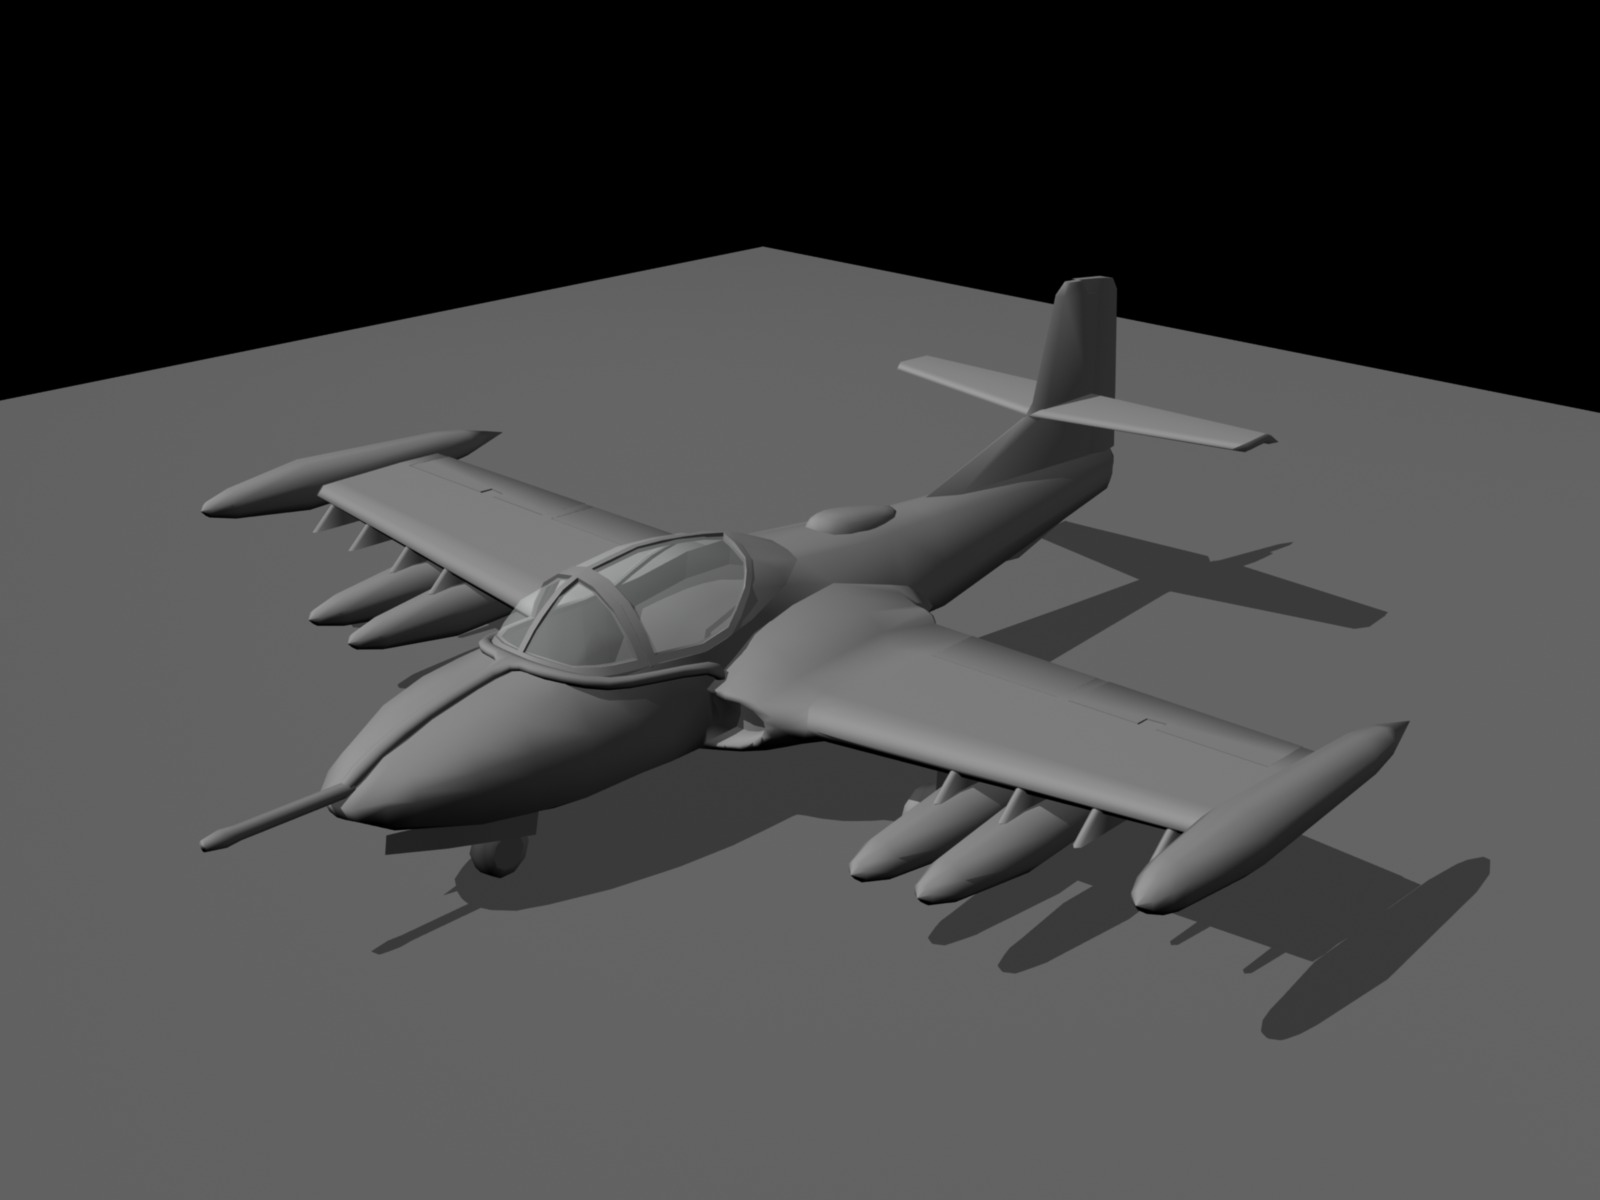 A-37 Dragonfly (Ancient work-in-progress)